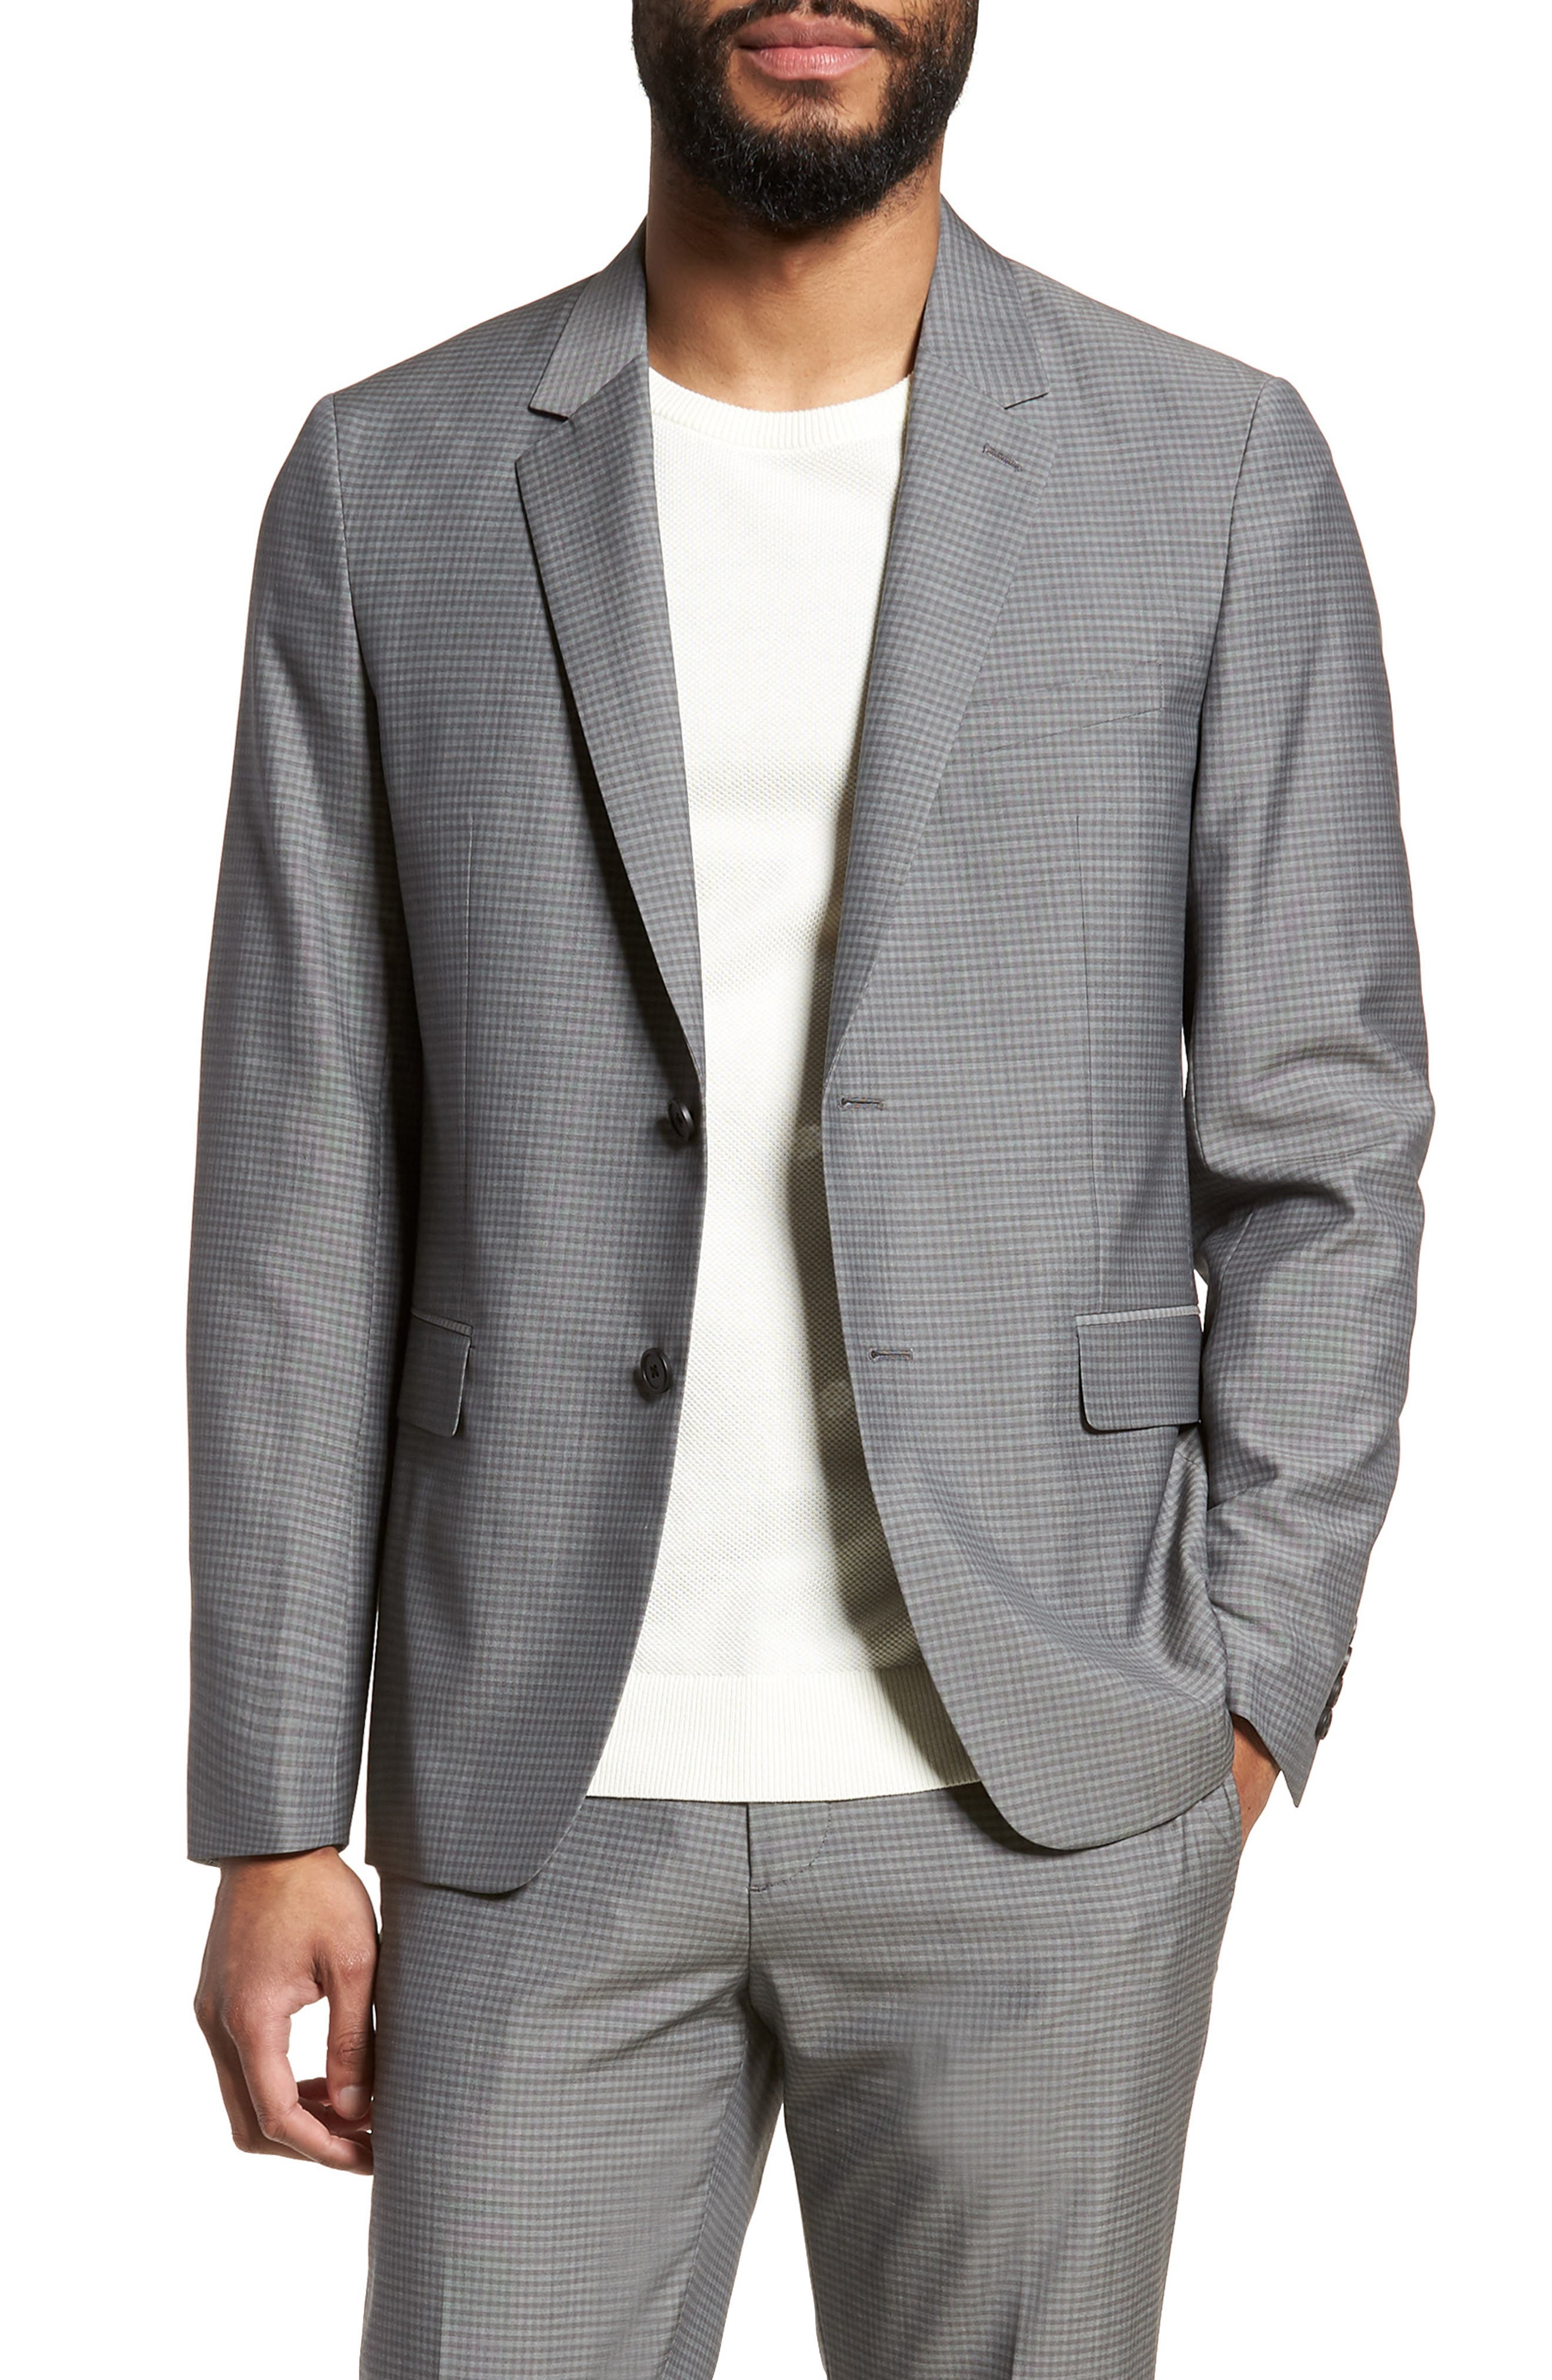 Main Image - Theory Gansevoort Trim Fit Check Wool Sport Coat